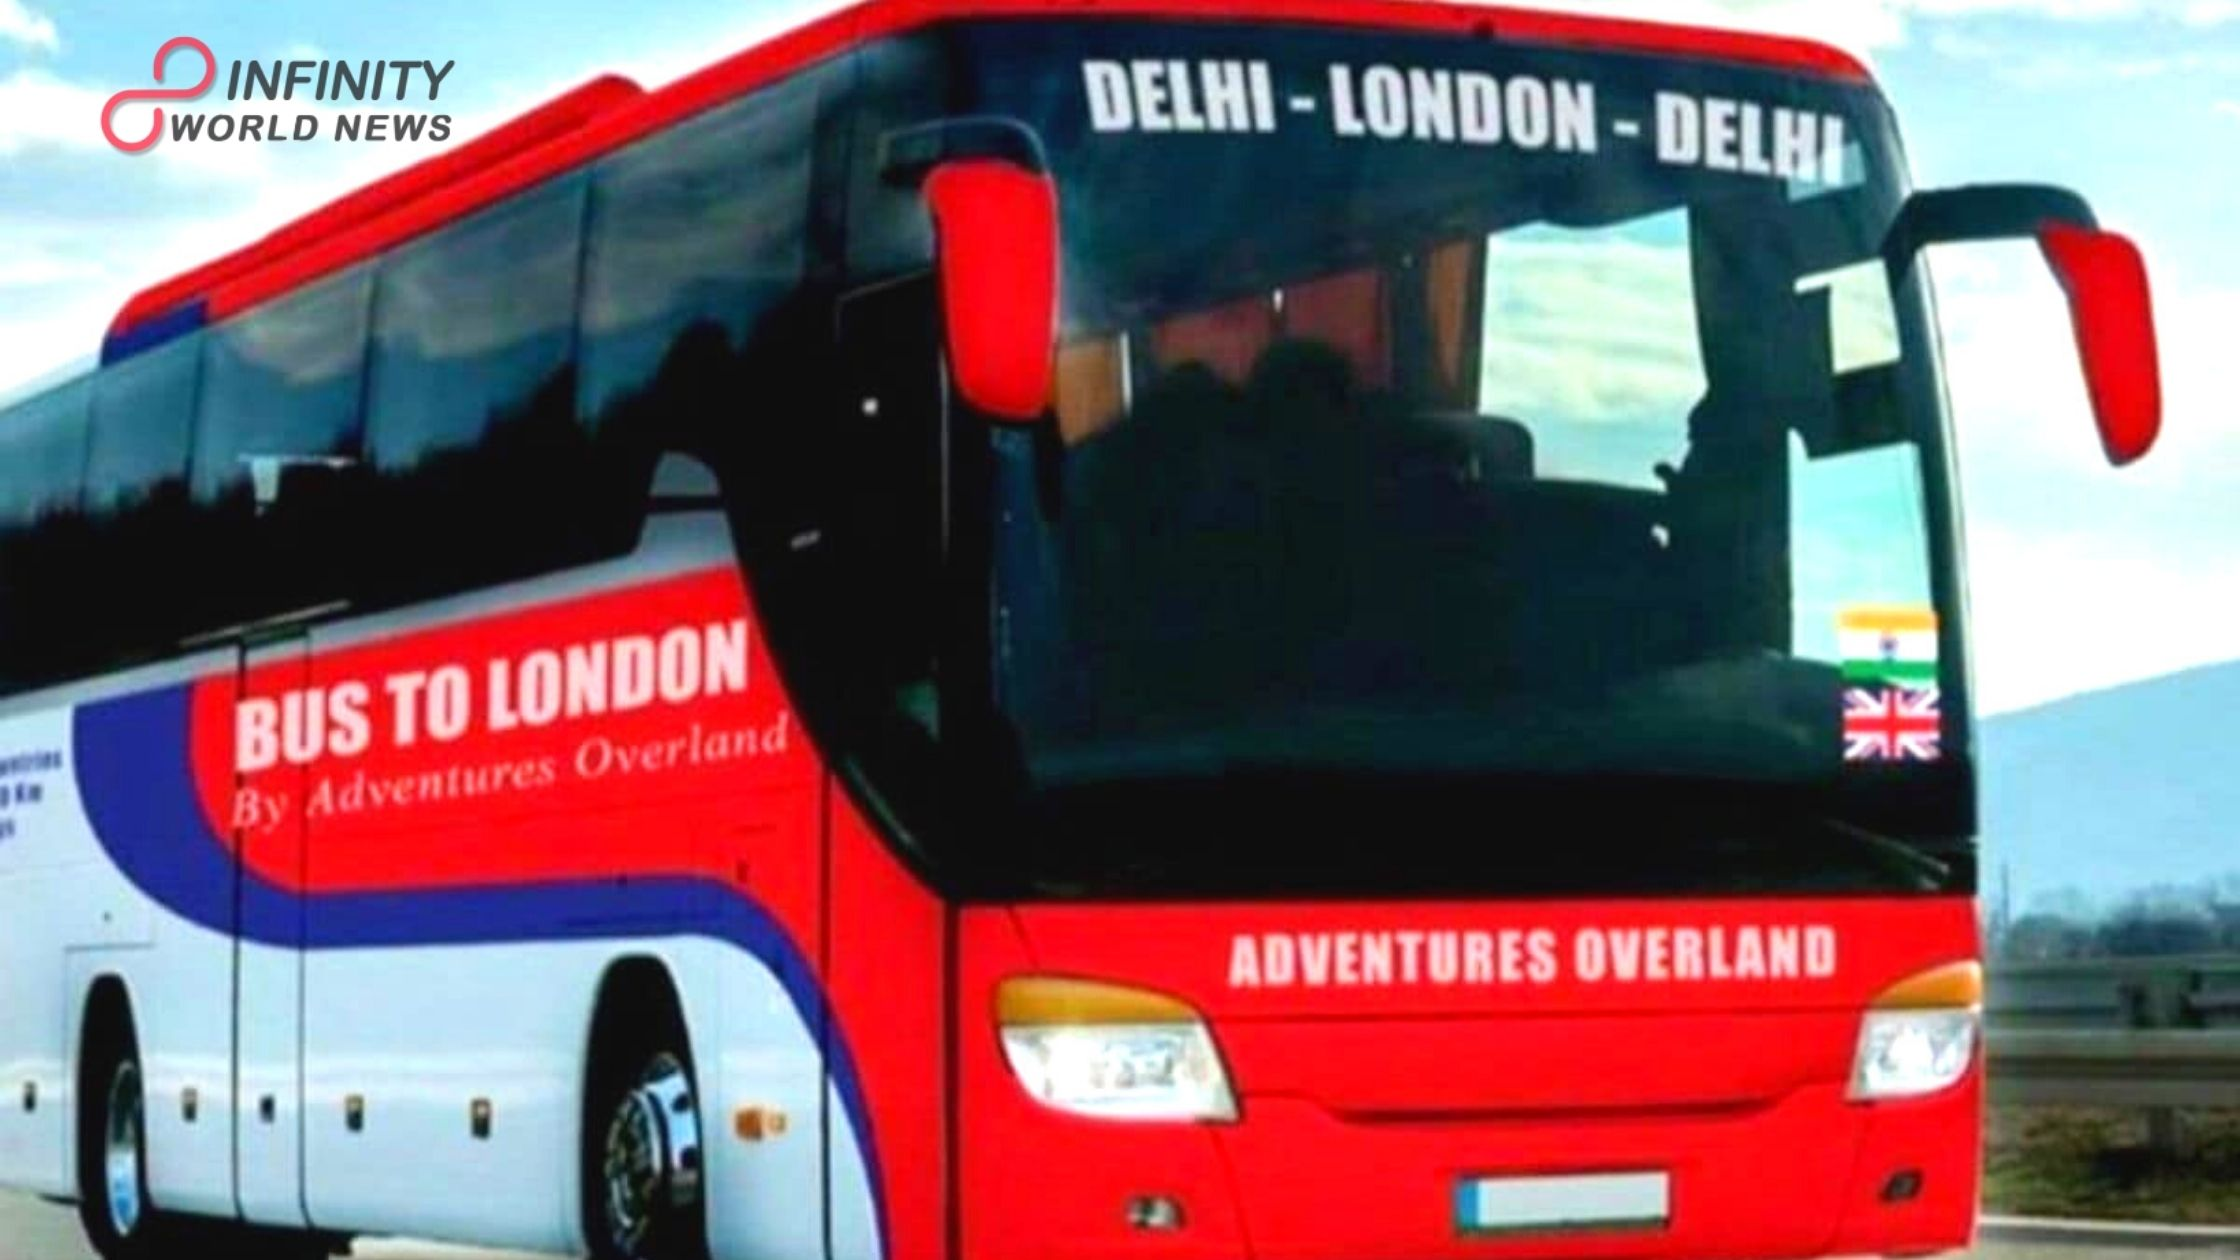 Rs 15 lakh could gain you a 70-day excursion from Delhi to London.